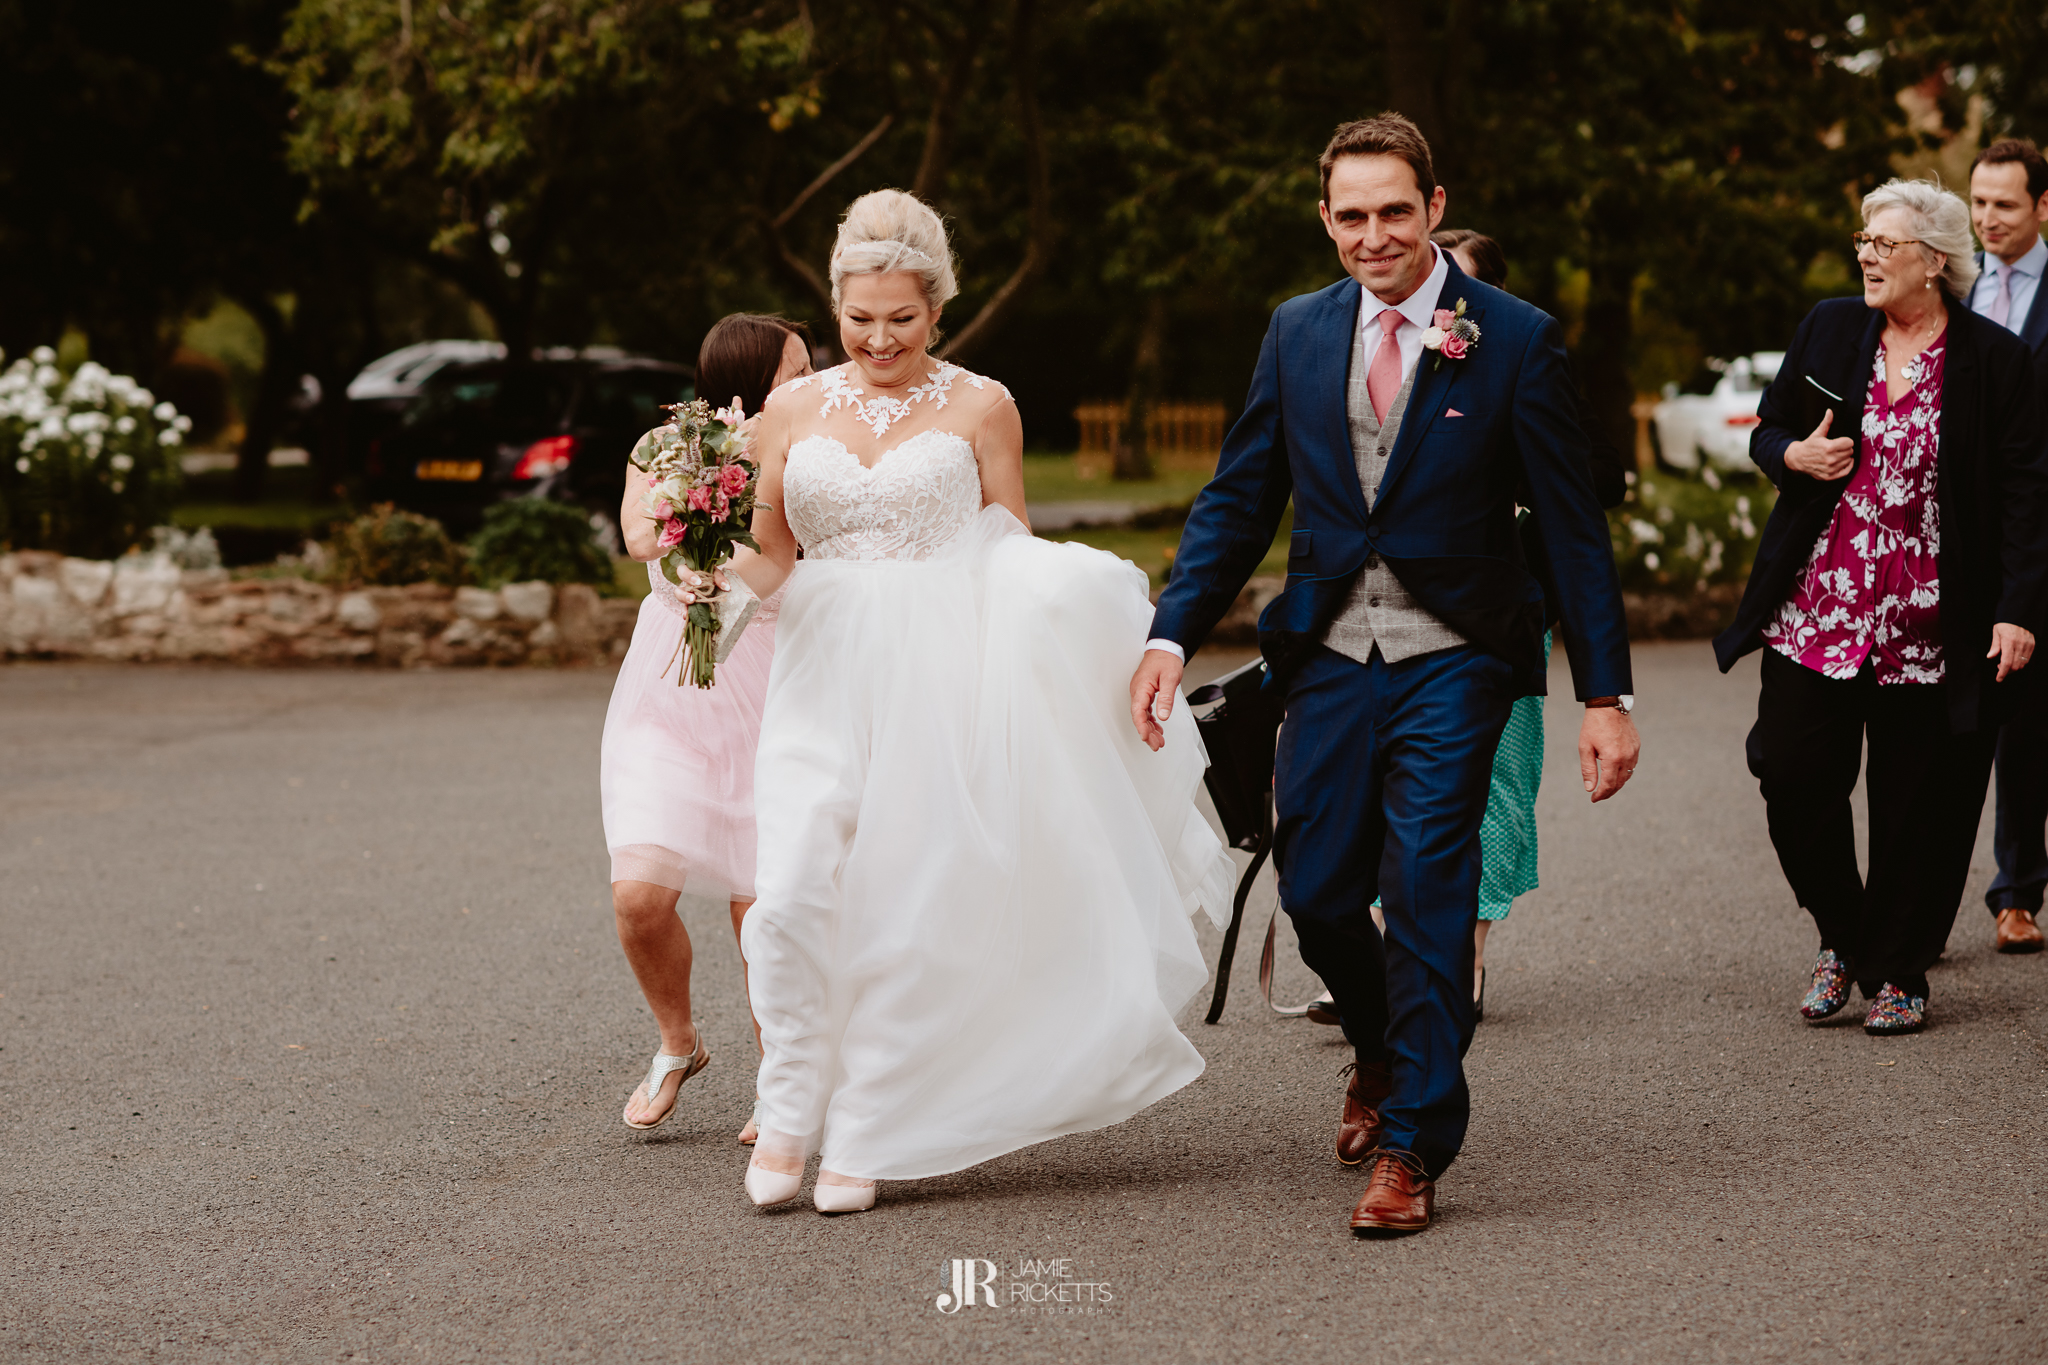 Wroxeter-Hotel-Wedding-Photography-In-Shropshire-By-Shropshire-Wedding-Photographer-Jamie-Ricketts-070.JPG